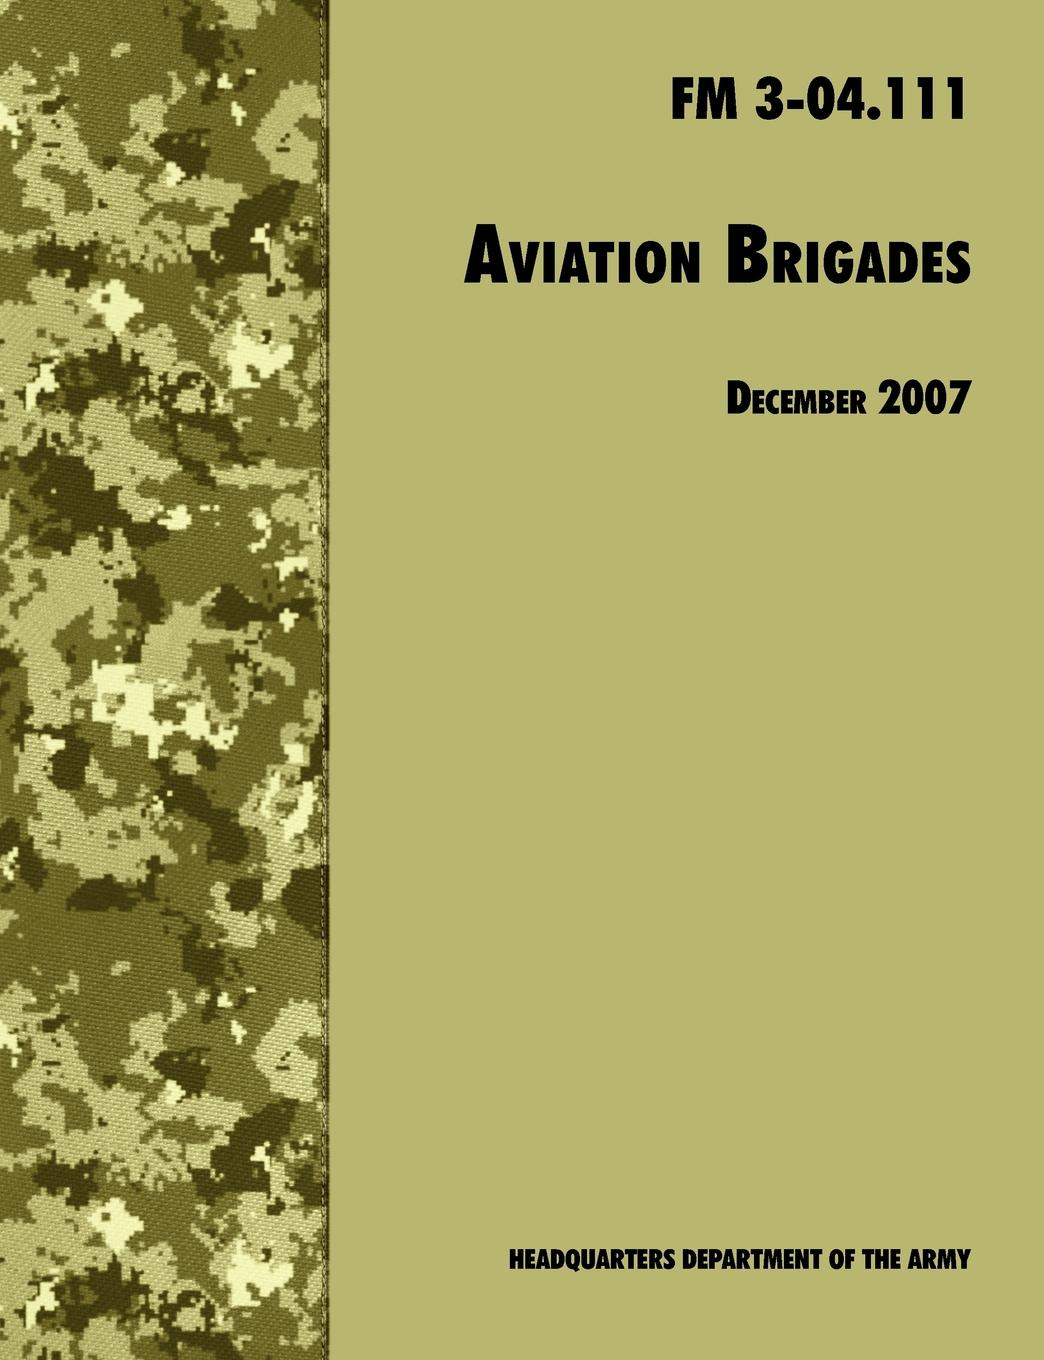 U.S. Department of the Army, Army Training and Doctrine Command Aviation Brigades. The Official U.S. Army Field Manual FM 3-04.111 (7 December 2007 revision)